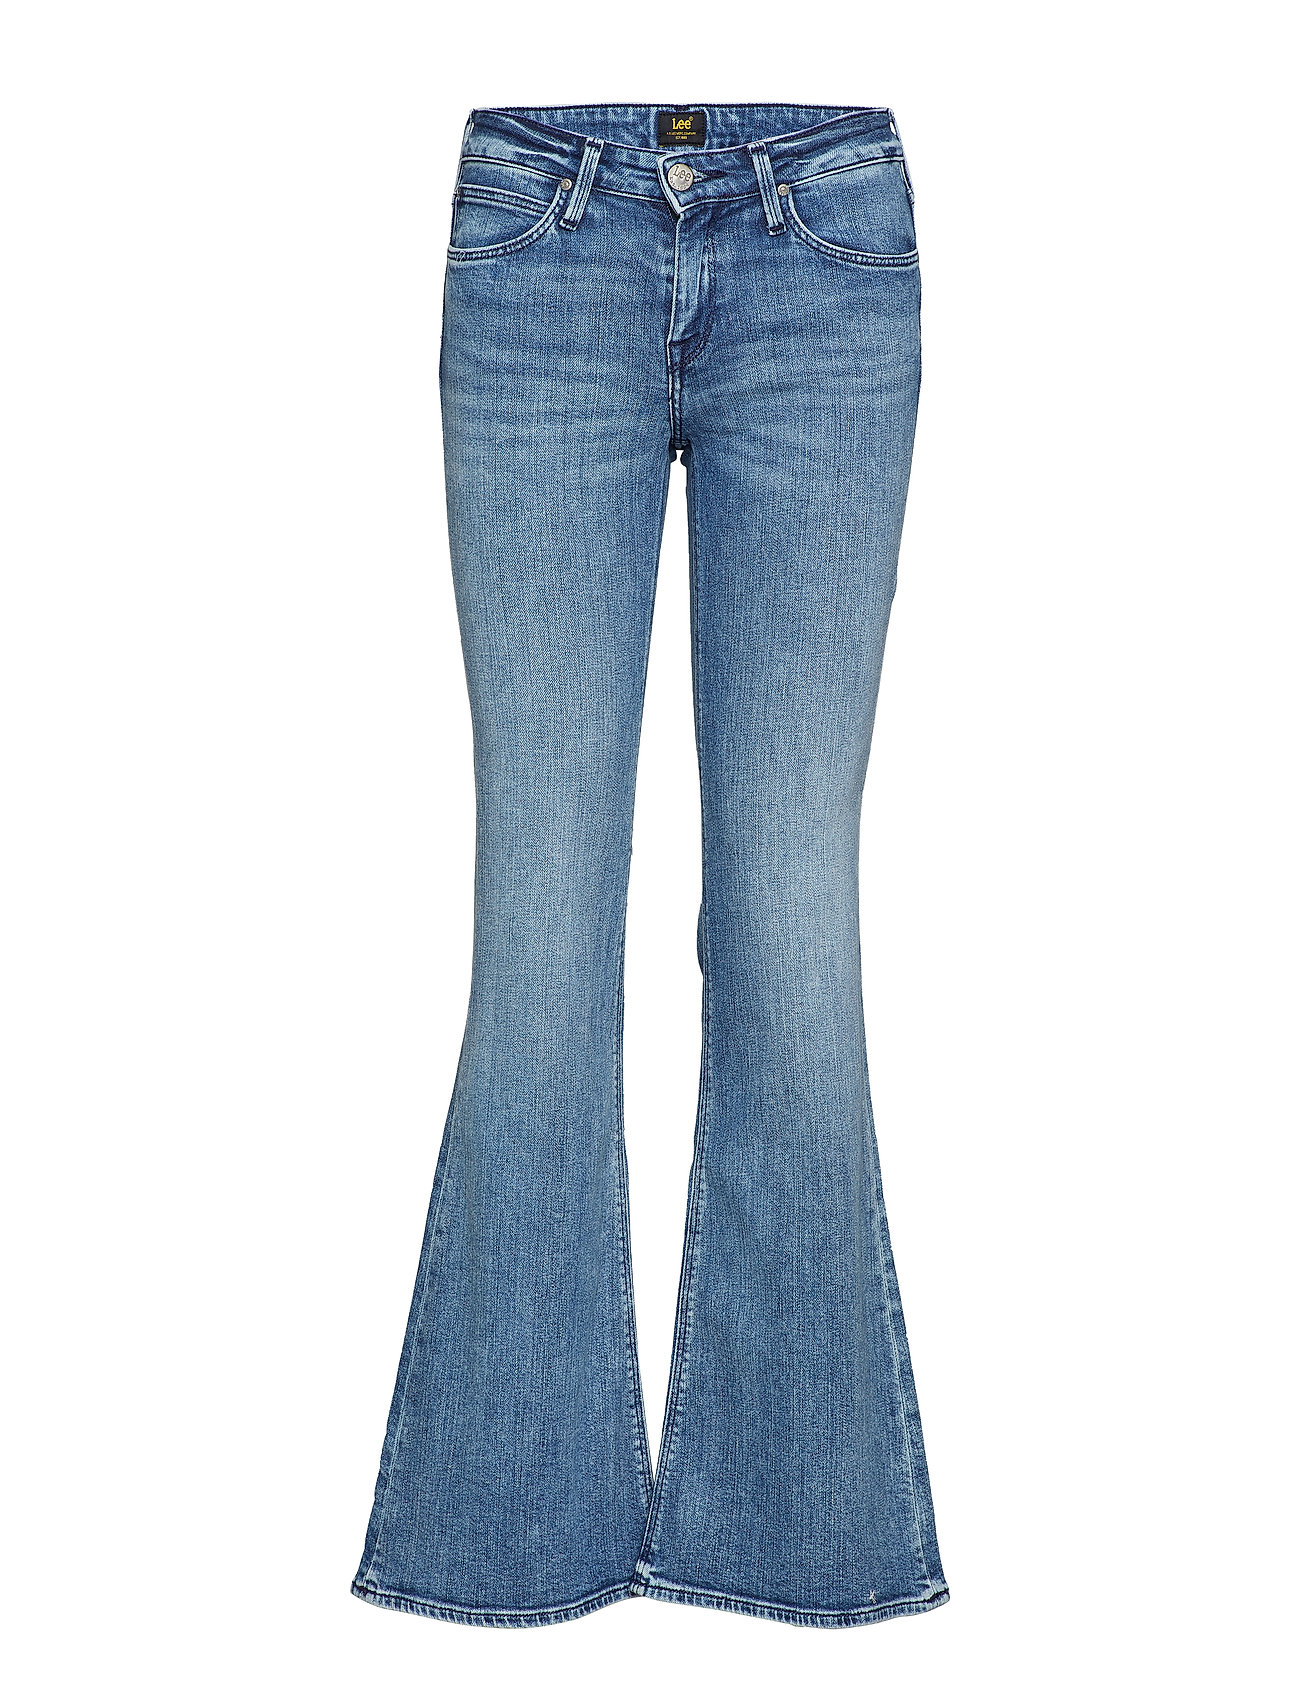 Lee Chaffee Pants cool daze Lee Damen Jeans | Gratis